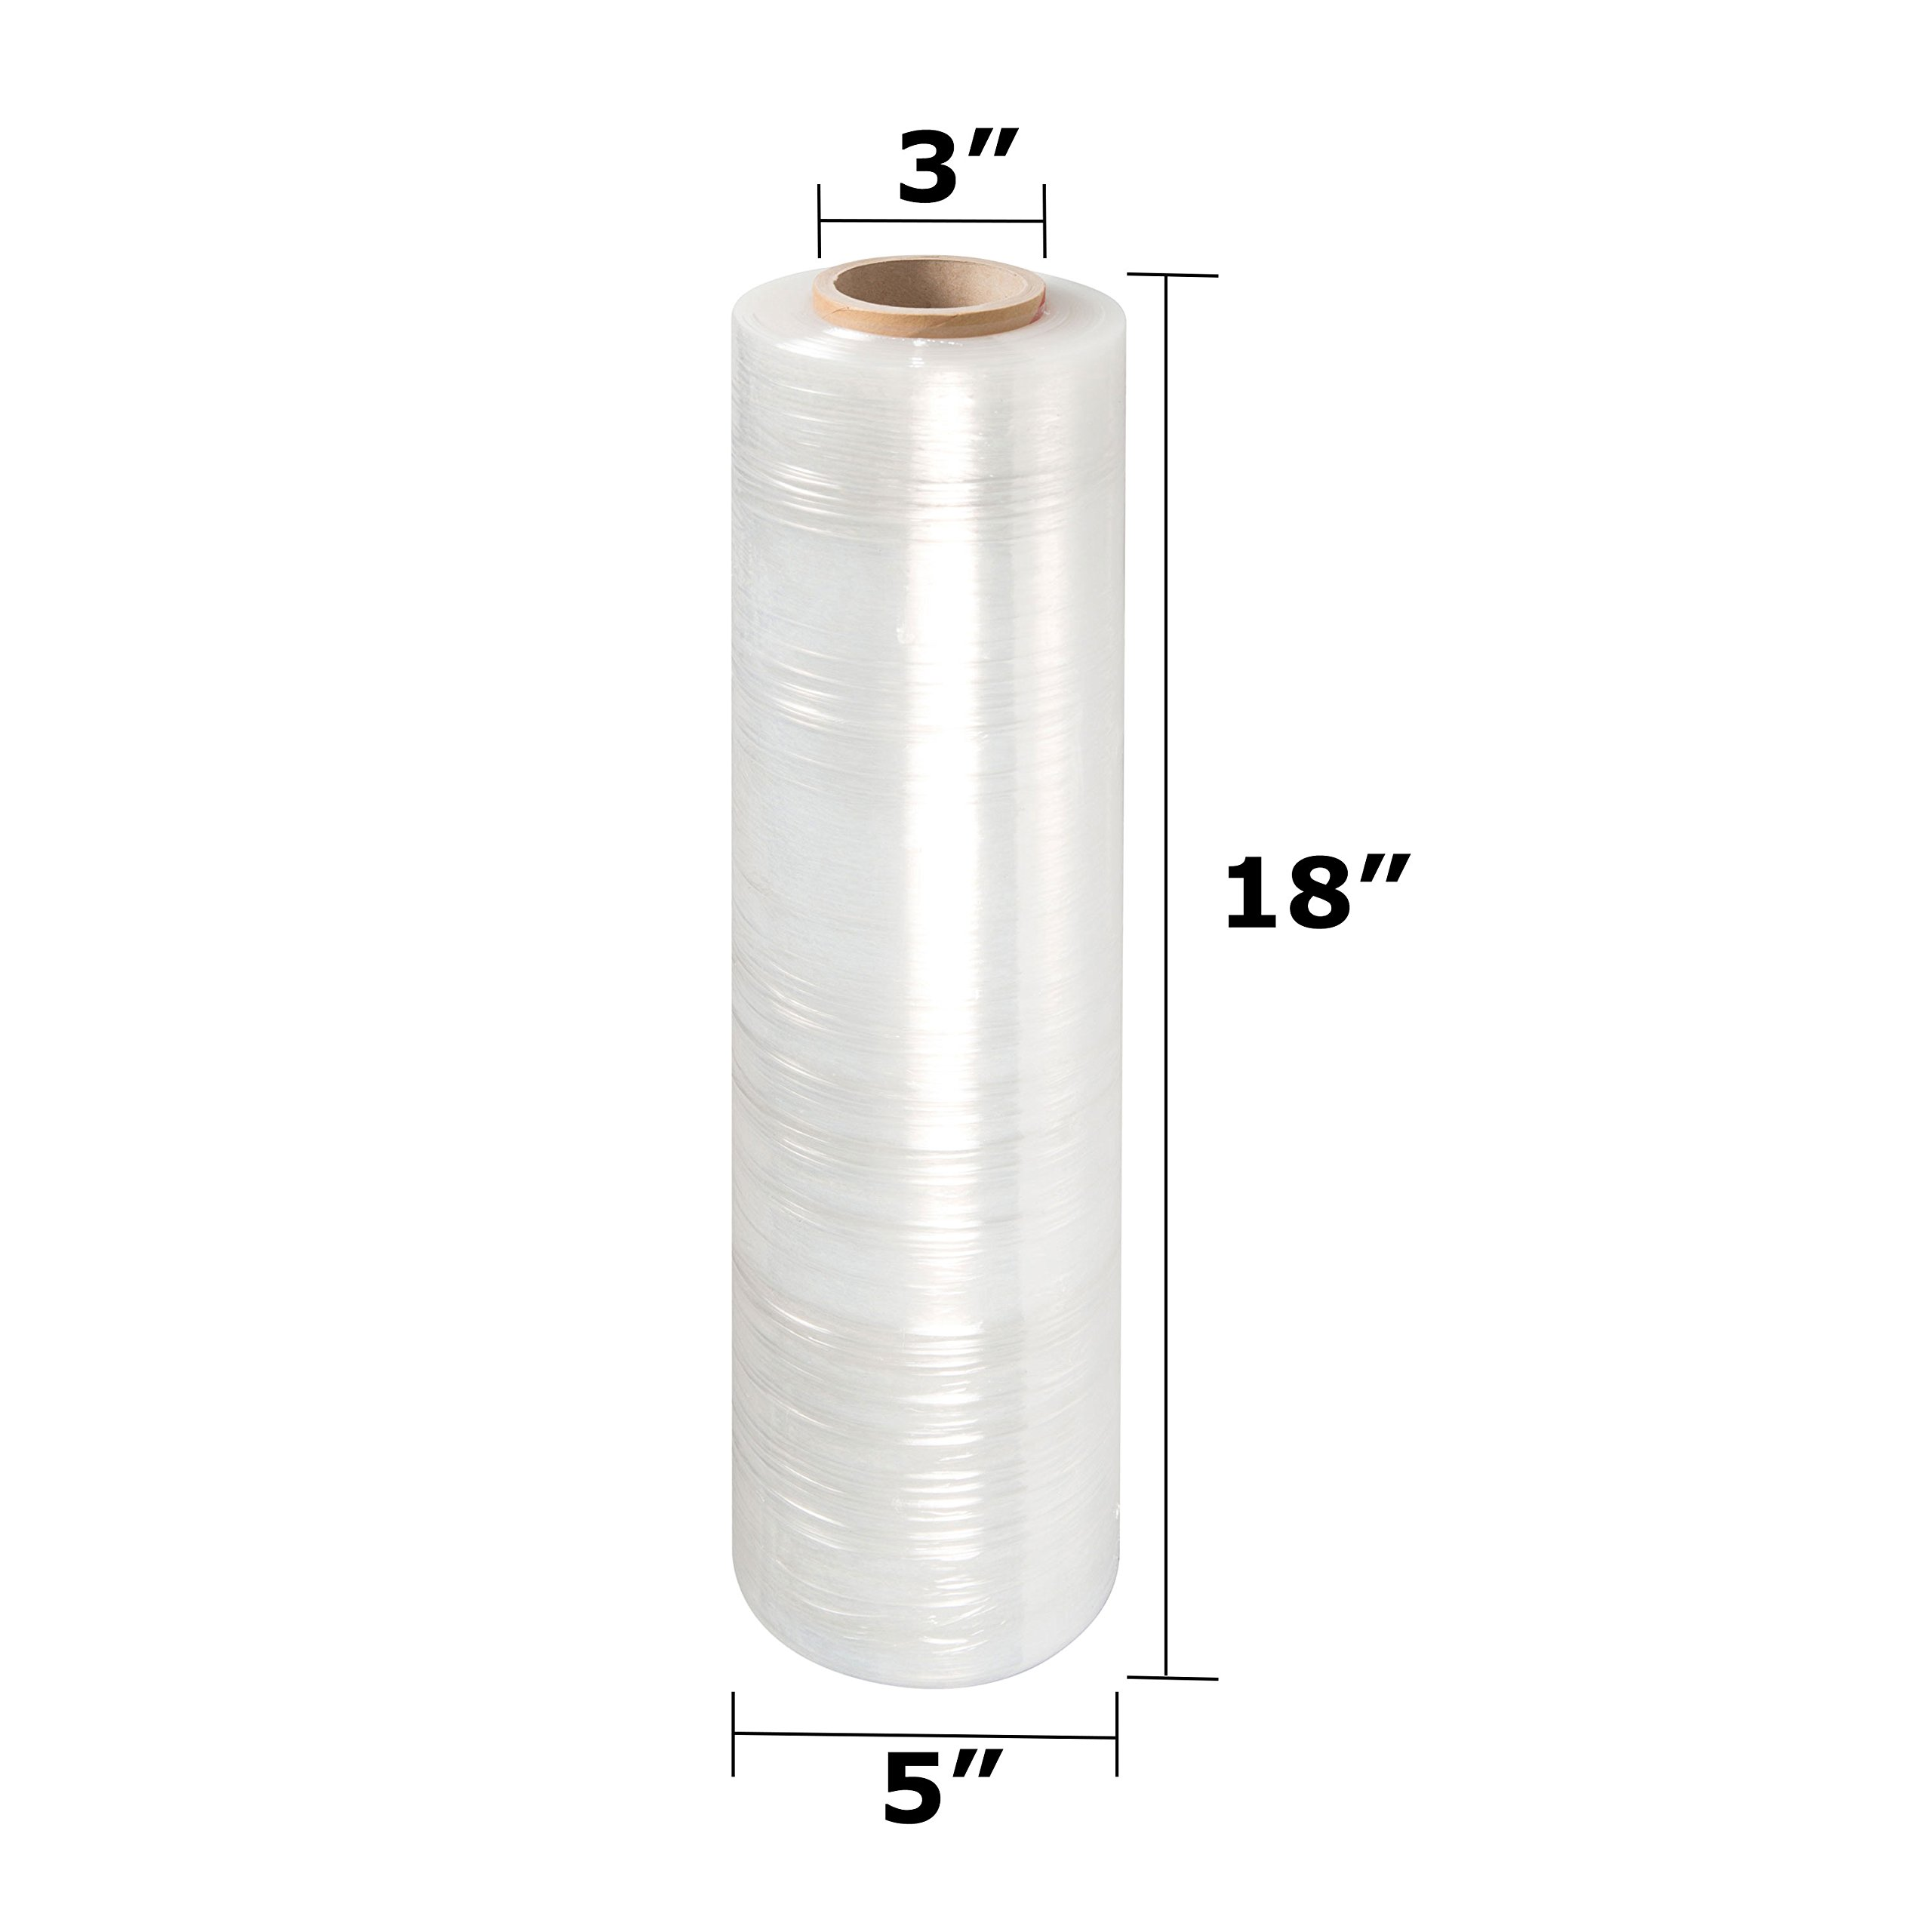 LTB 2070 Stretch Wrap Film, 70 Gauge, 18'' x 1500 Ft Per Roll, Clear (Pack of 4) by LTB MFG (Image #2)